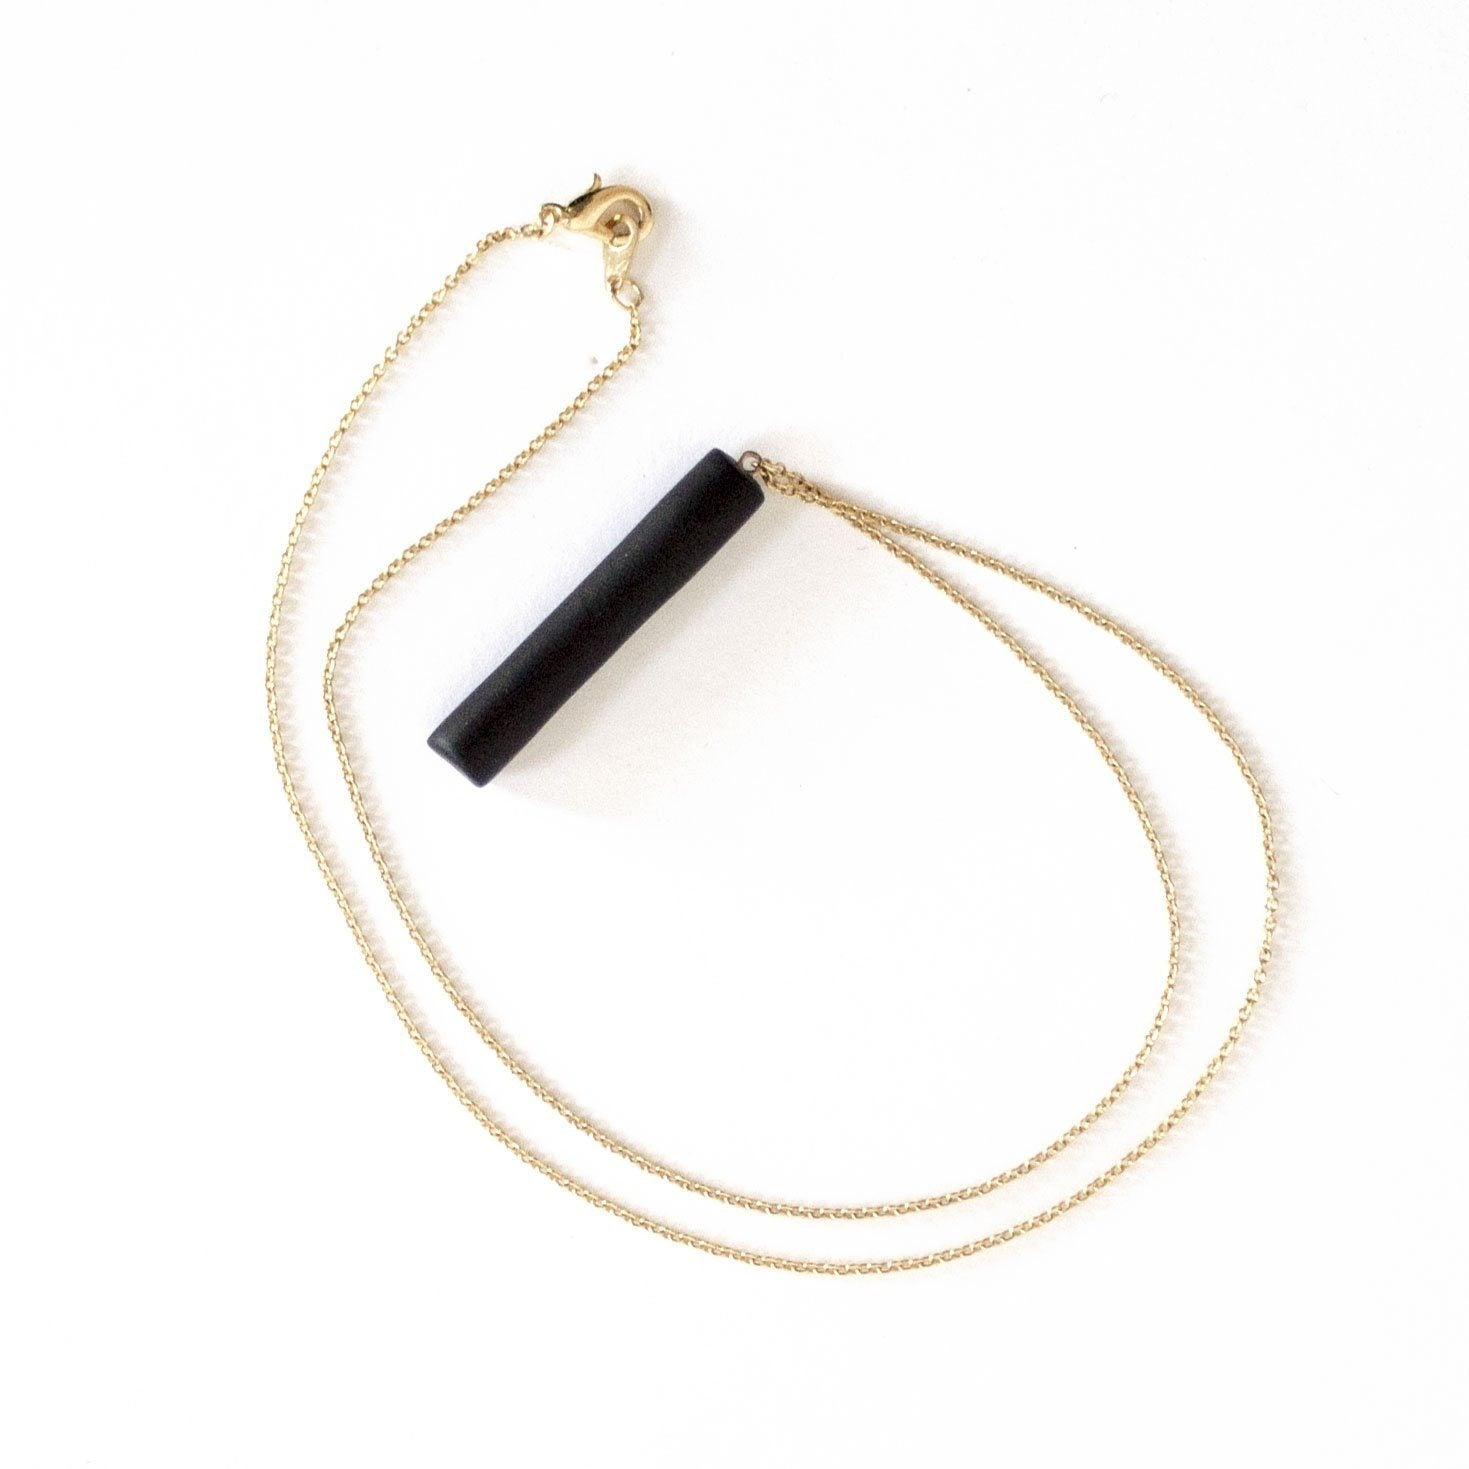 Gold Necklace - Black Bar Pendant - Necklaces - 5mm Paper - Naiise